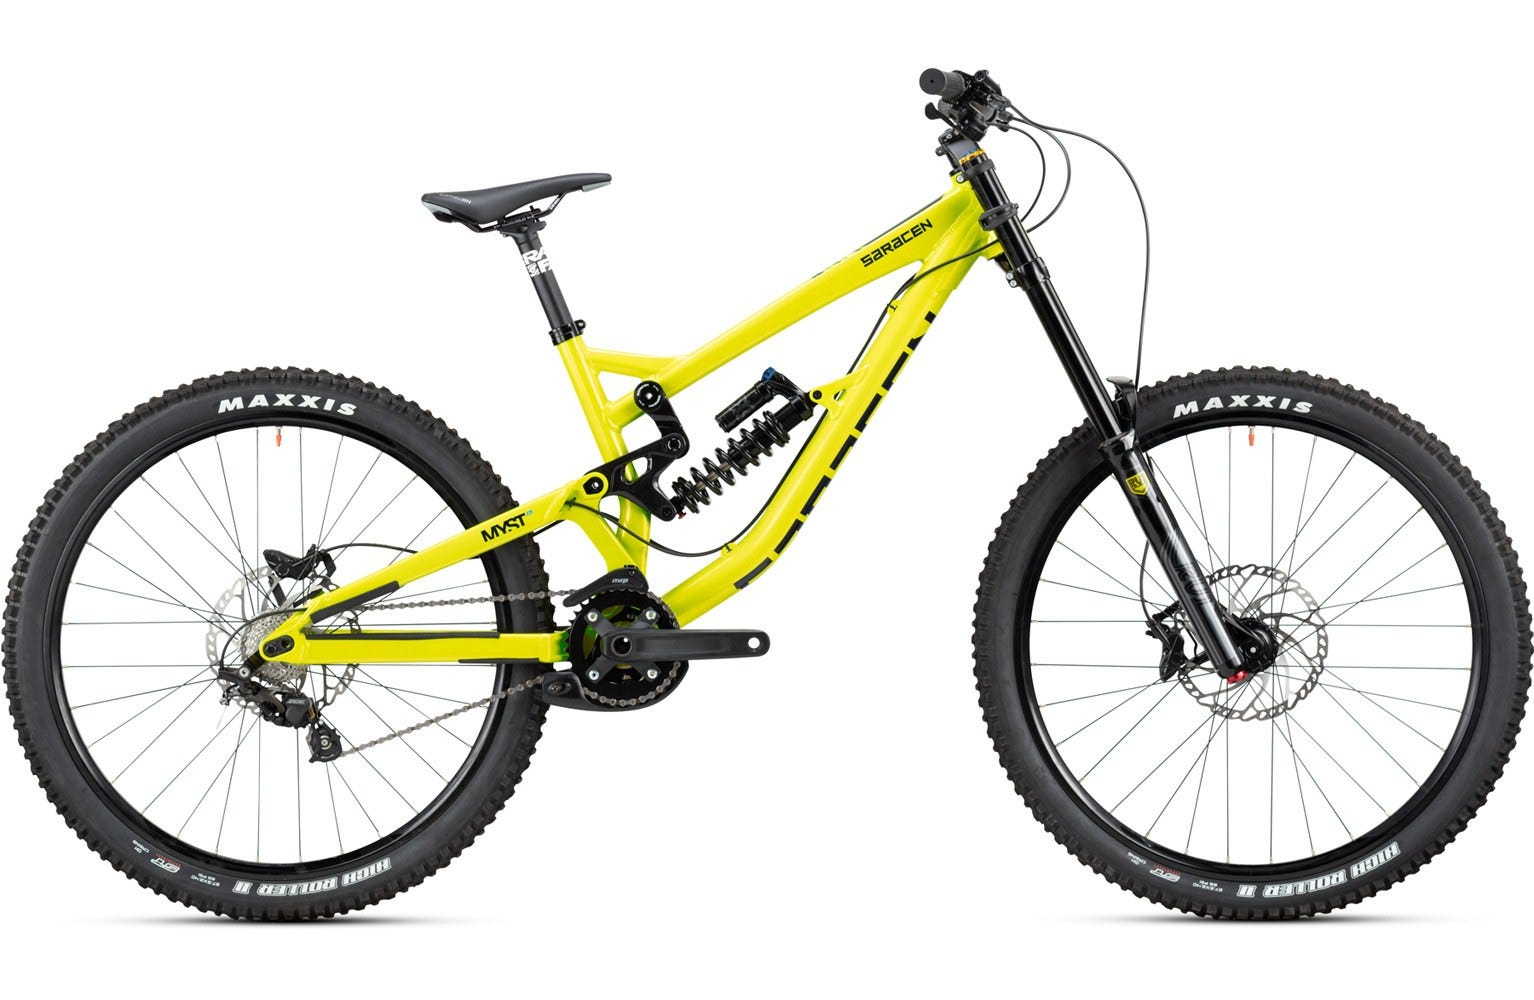 Saracen 2020 Myst AL LG Bike sample (unused)